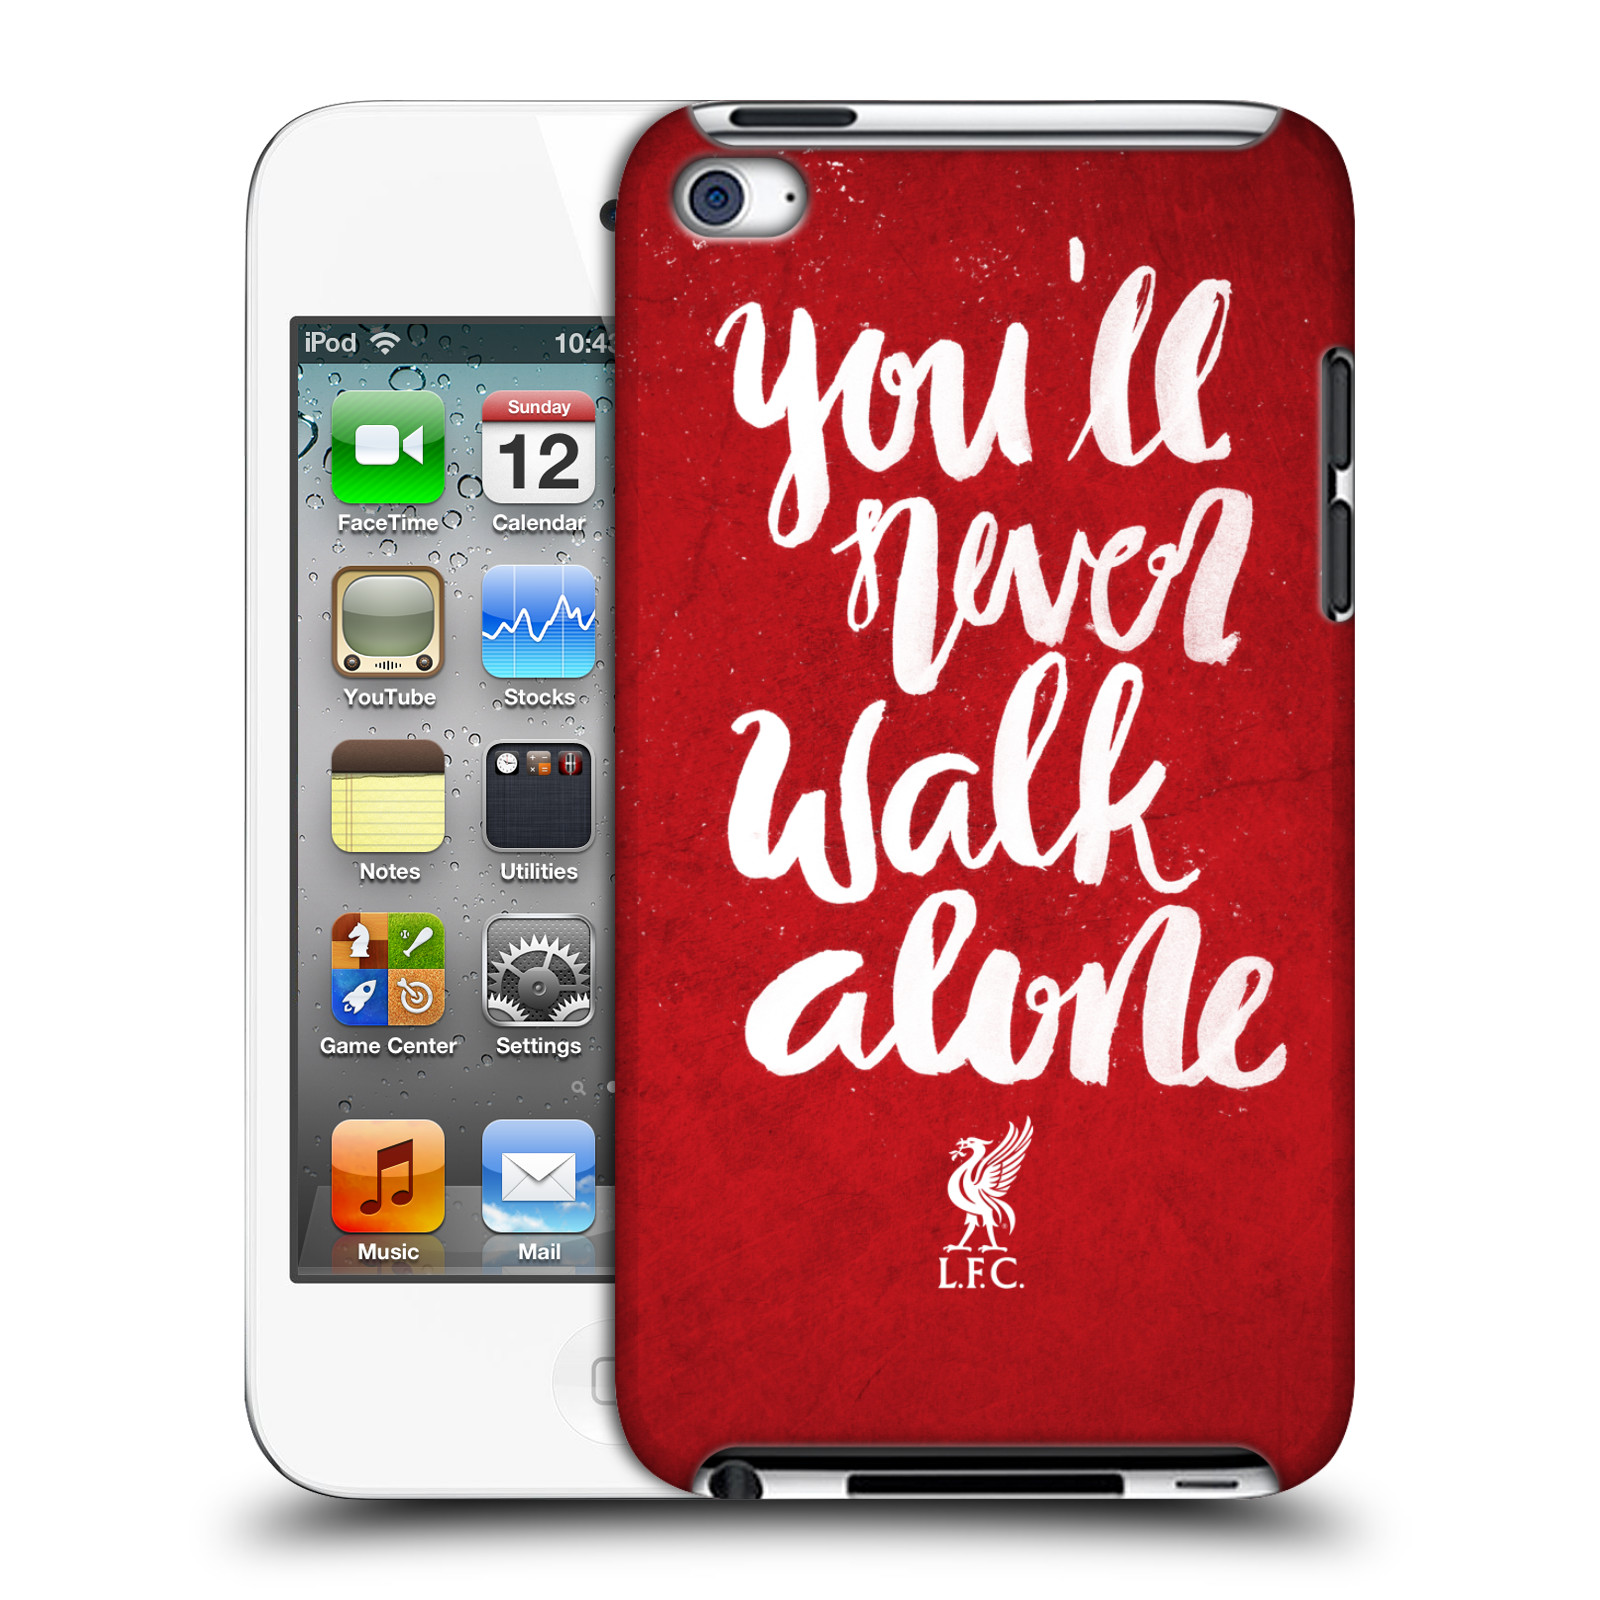 Free Liverpool Anthem Download Songs Mp3